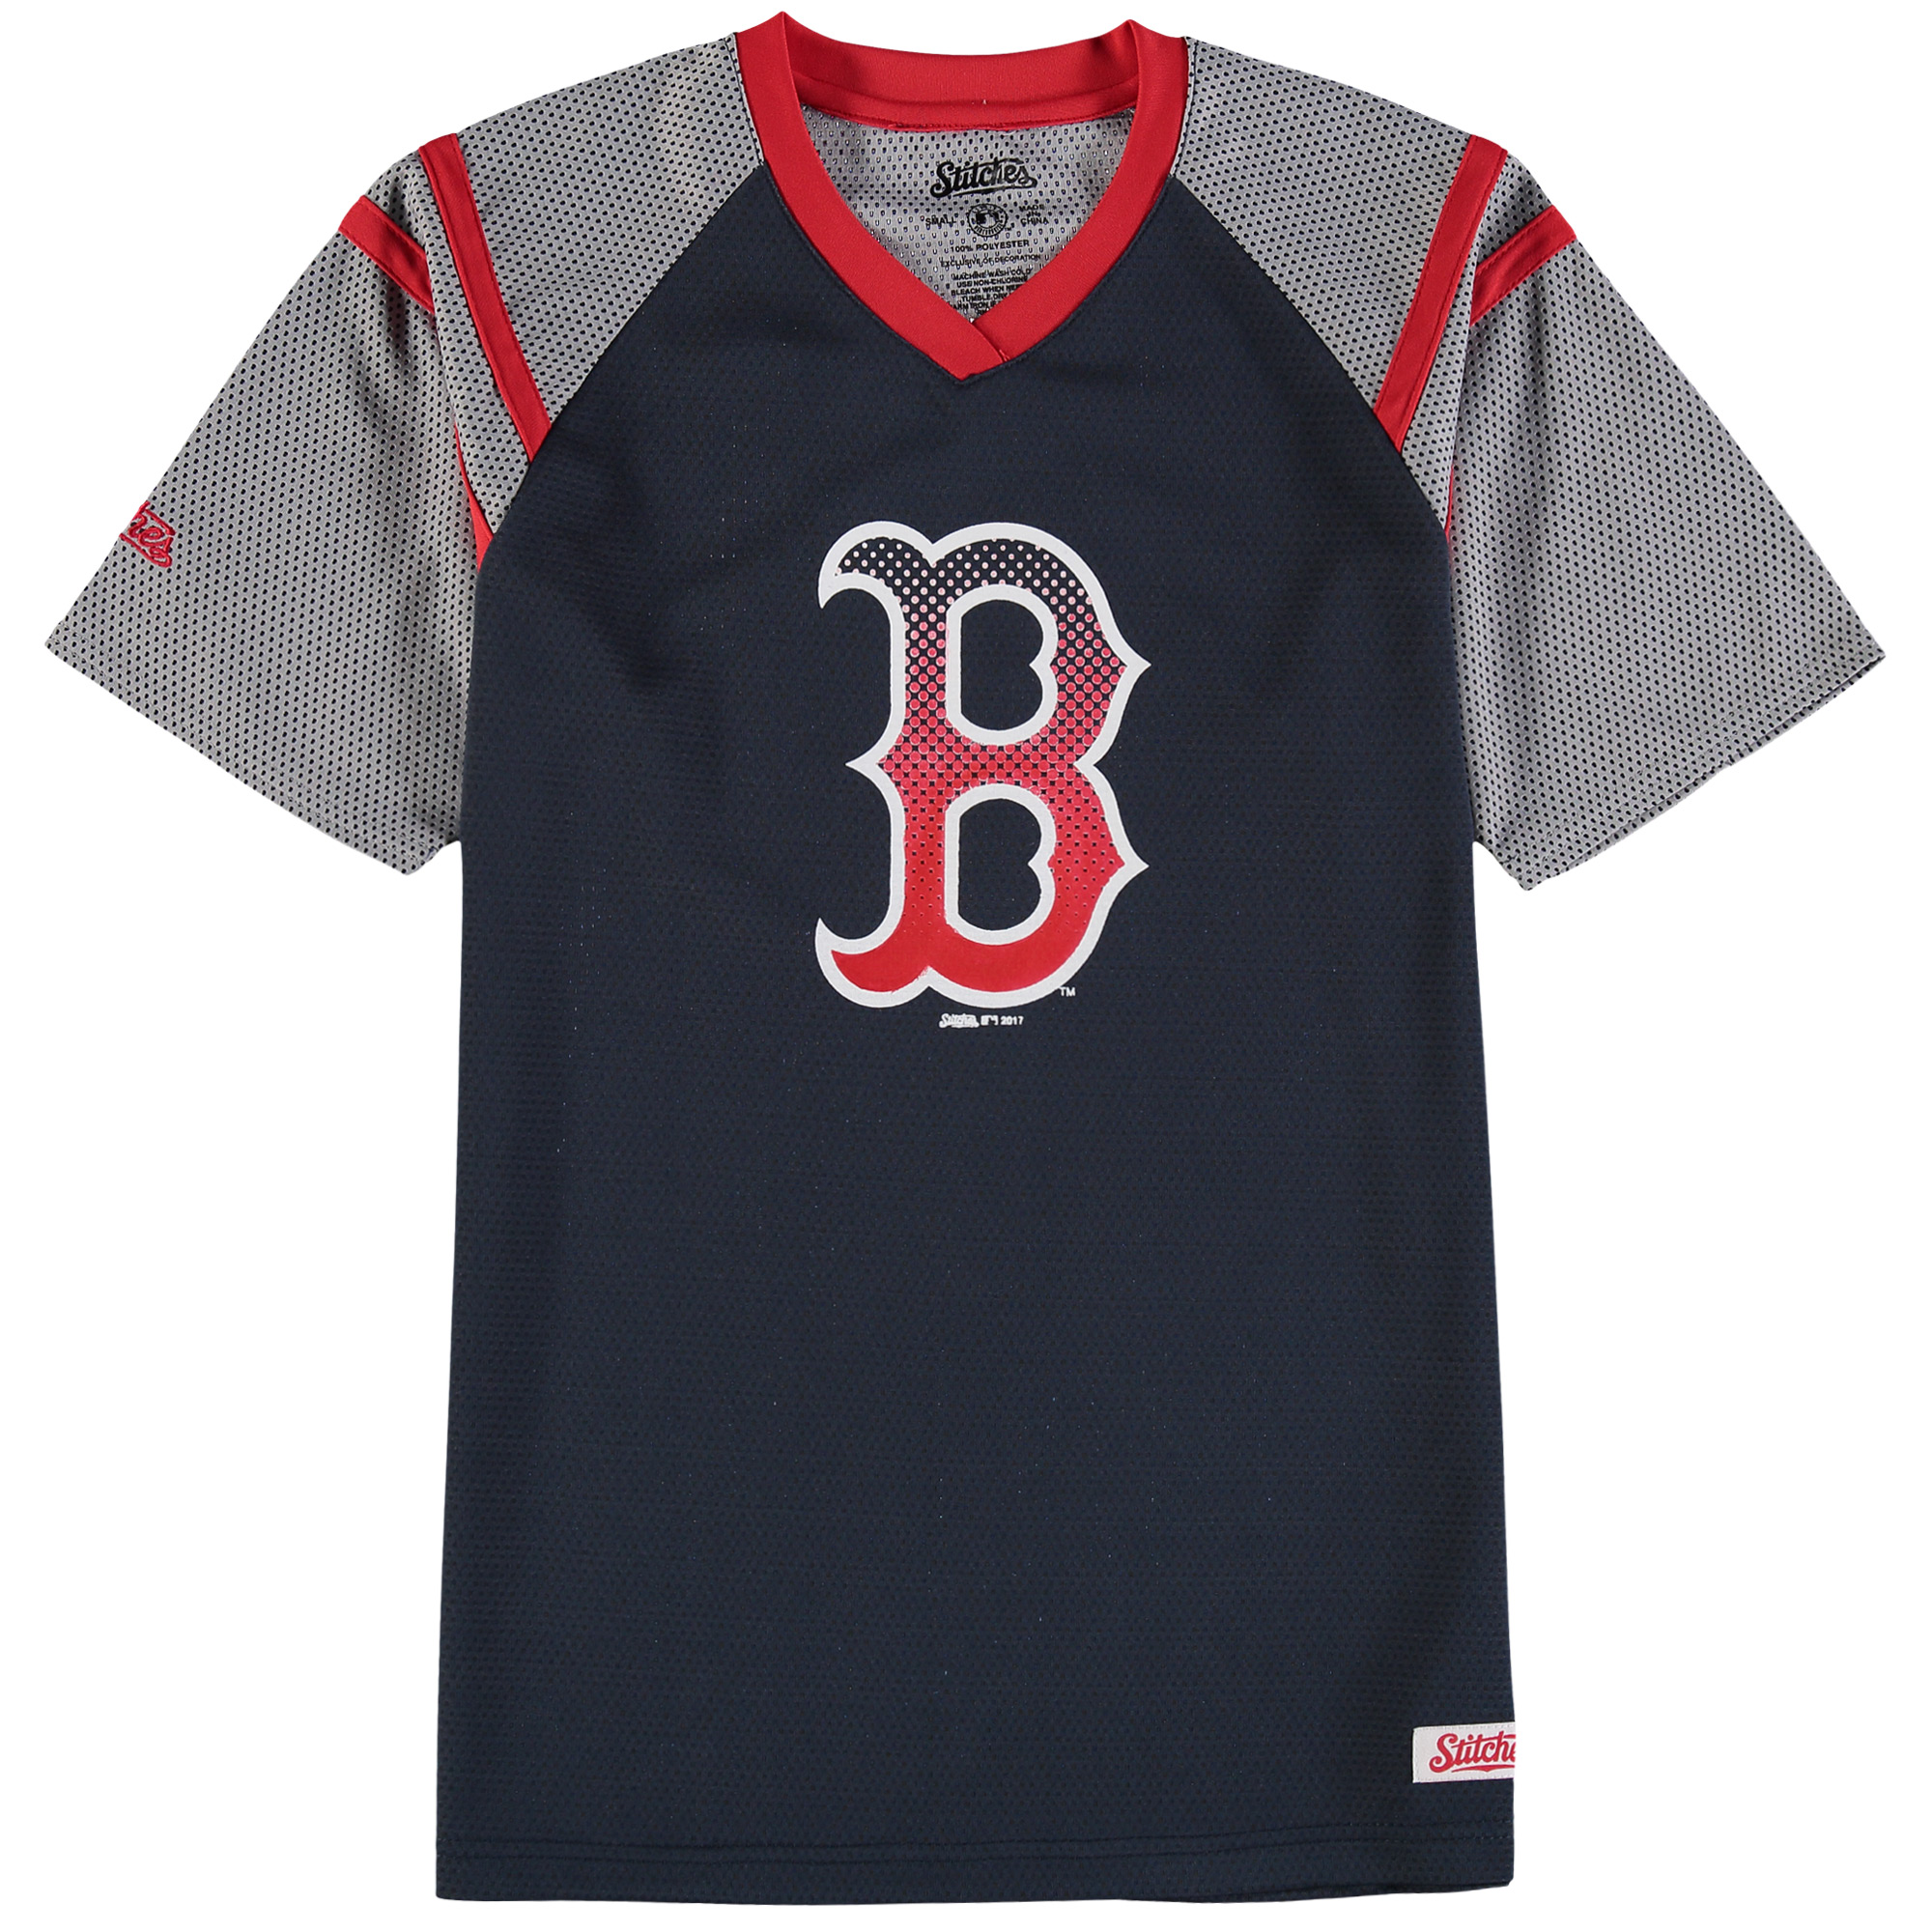 Boston Red Sox Stitches Youth Mesh V-Neck Jersey T-Shirt - Navy/Red